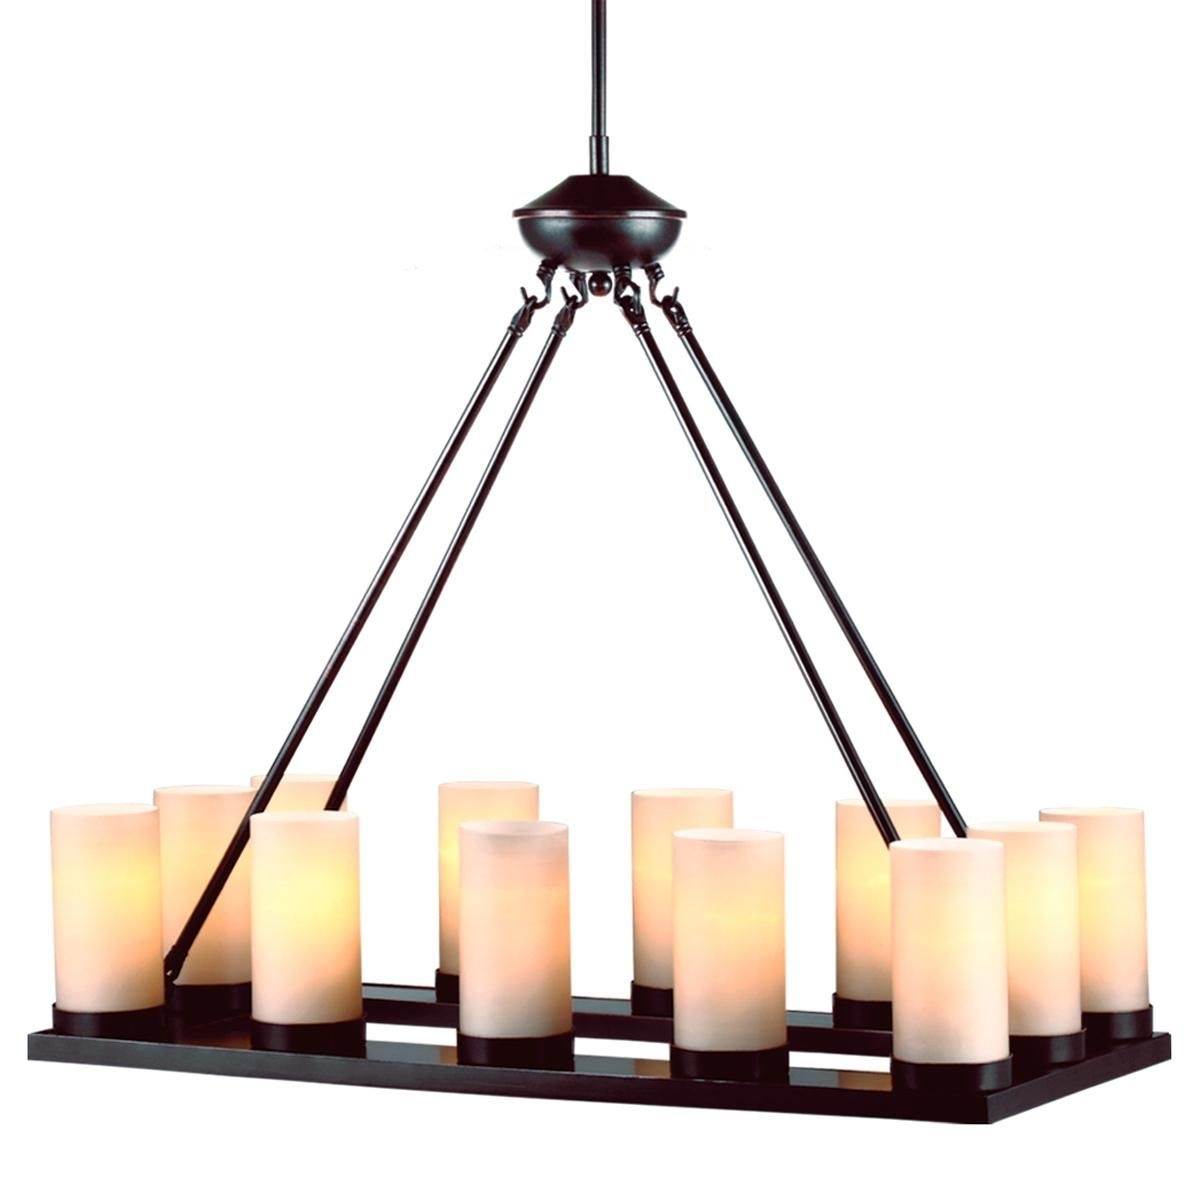 Rustic Chic Rectangular Tray Chandelier 12 Lights | Rustic Chic Within Modern Rustic Outdoor Lighting Att Wayfair (View 2 of 15)